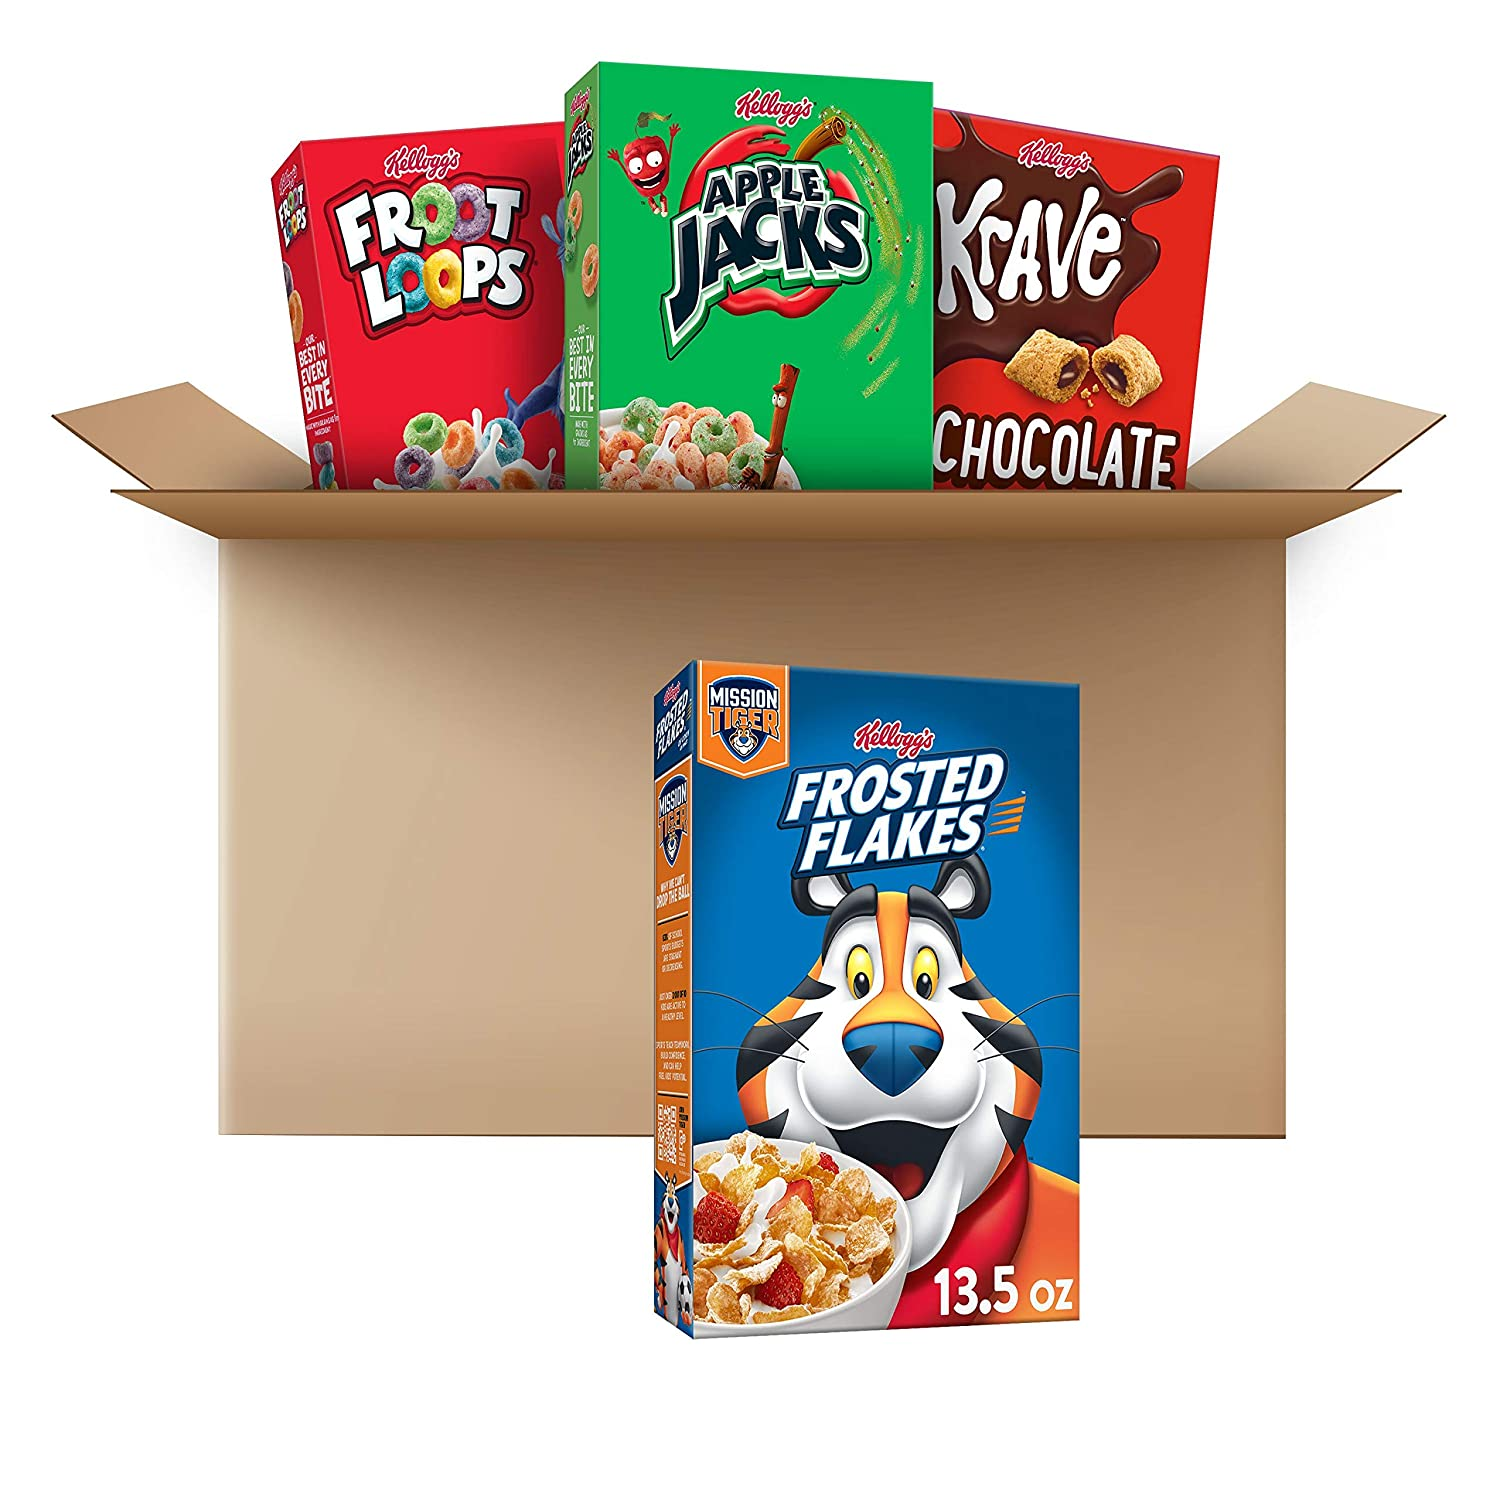 Kellogg's Breakfast Cereal, Variety Pack, Froot Loops 10.1 oz, Frosted Flakes 13.5 oz, Krave 11.4 oz, & Apple Jacks 10.1 oz